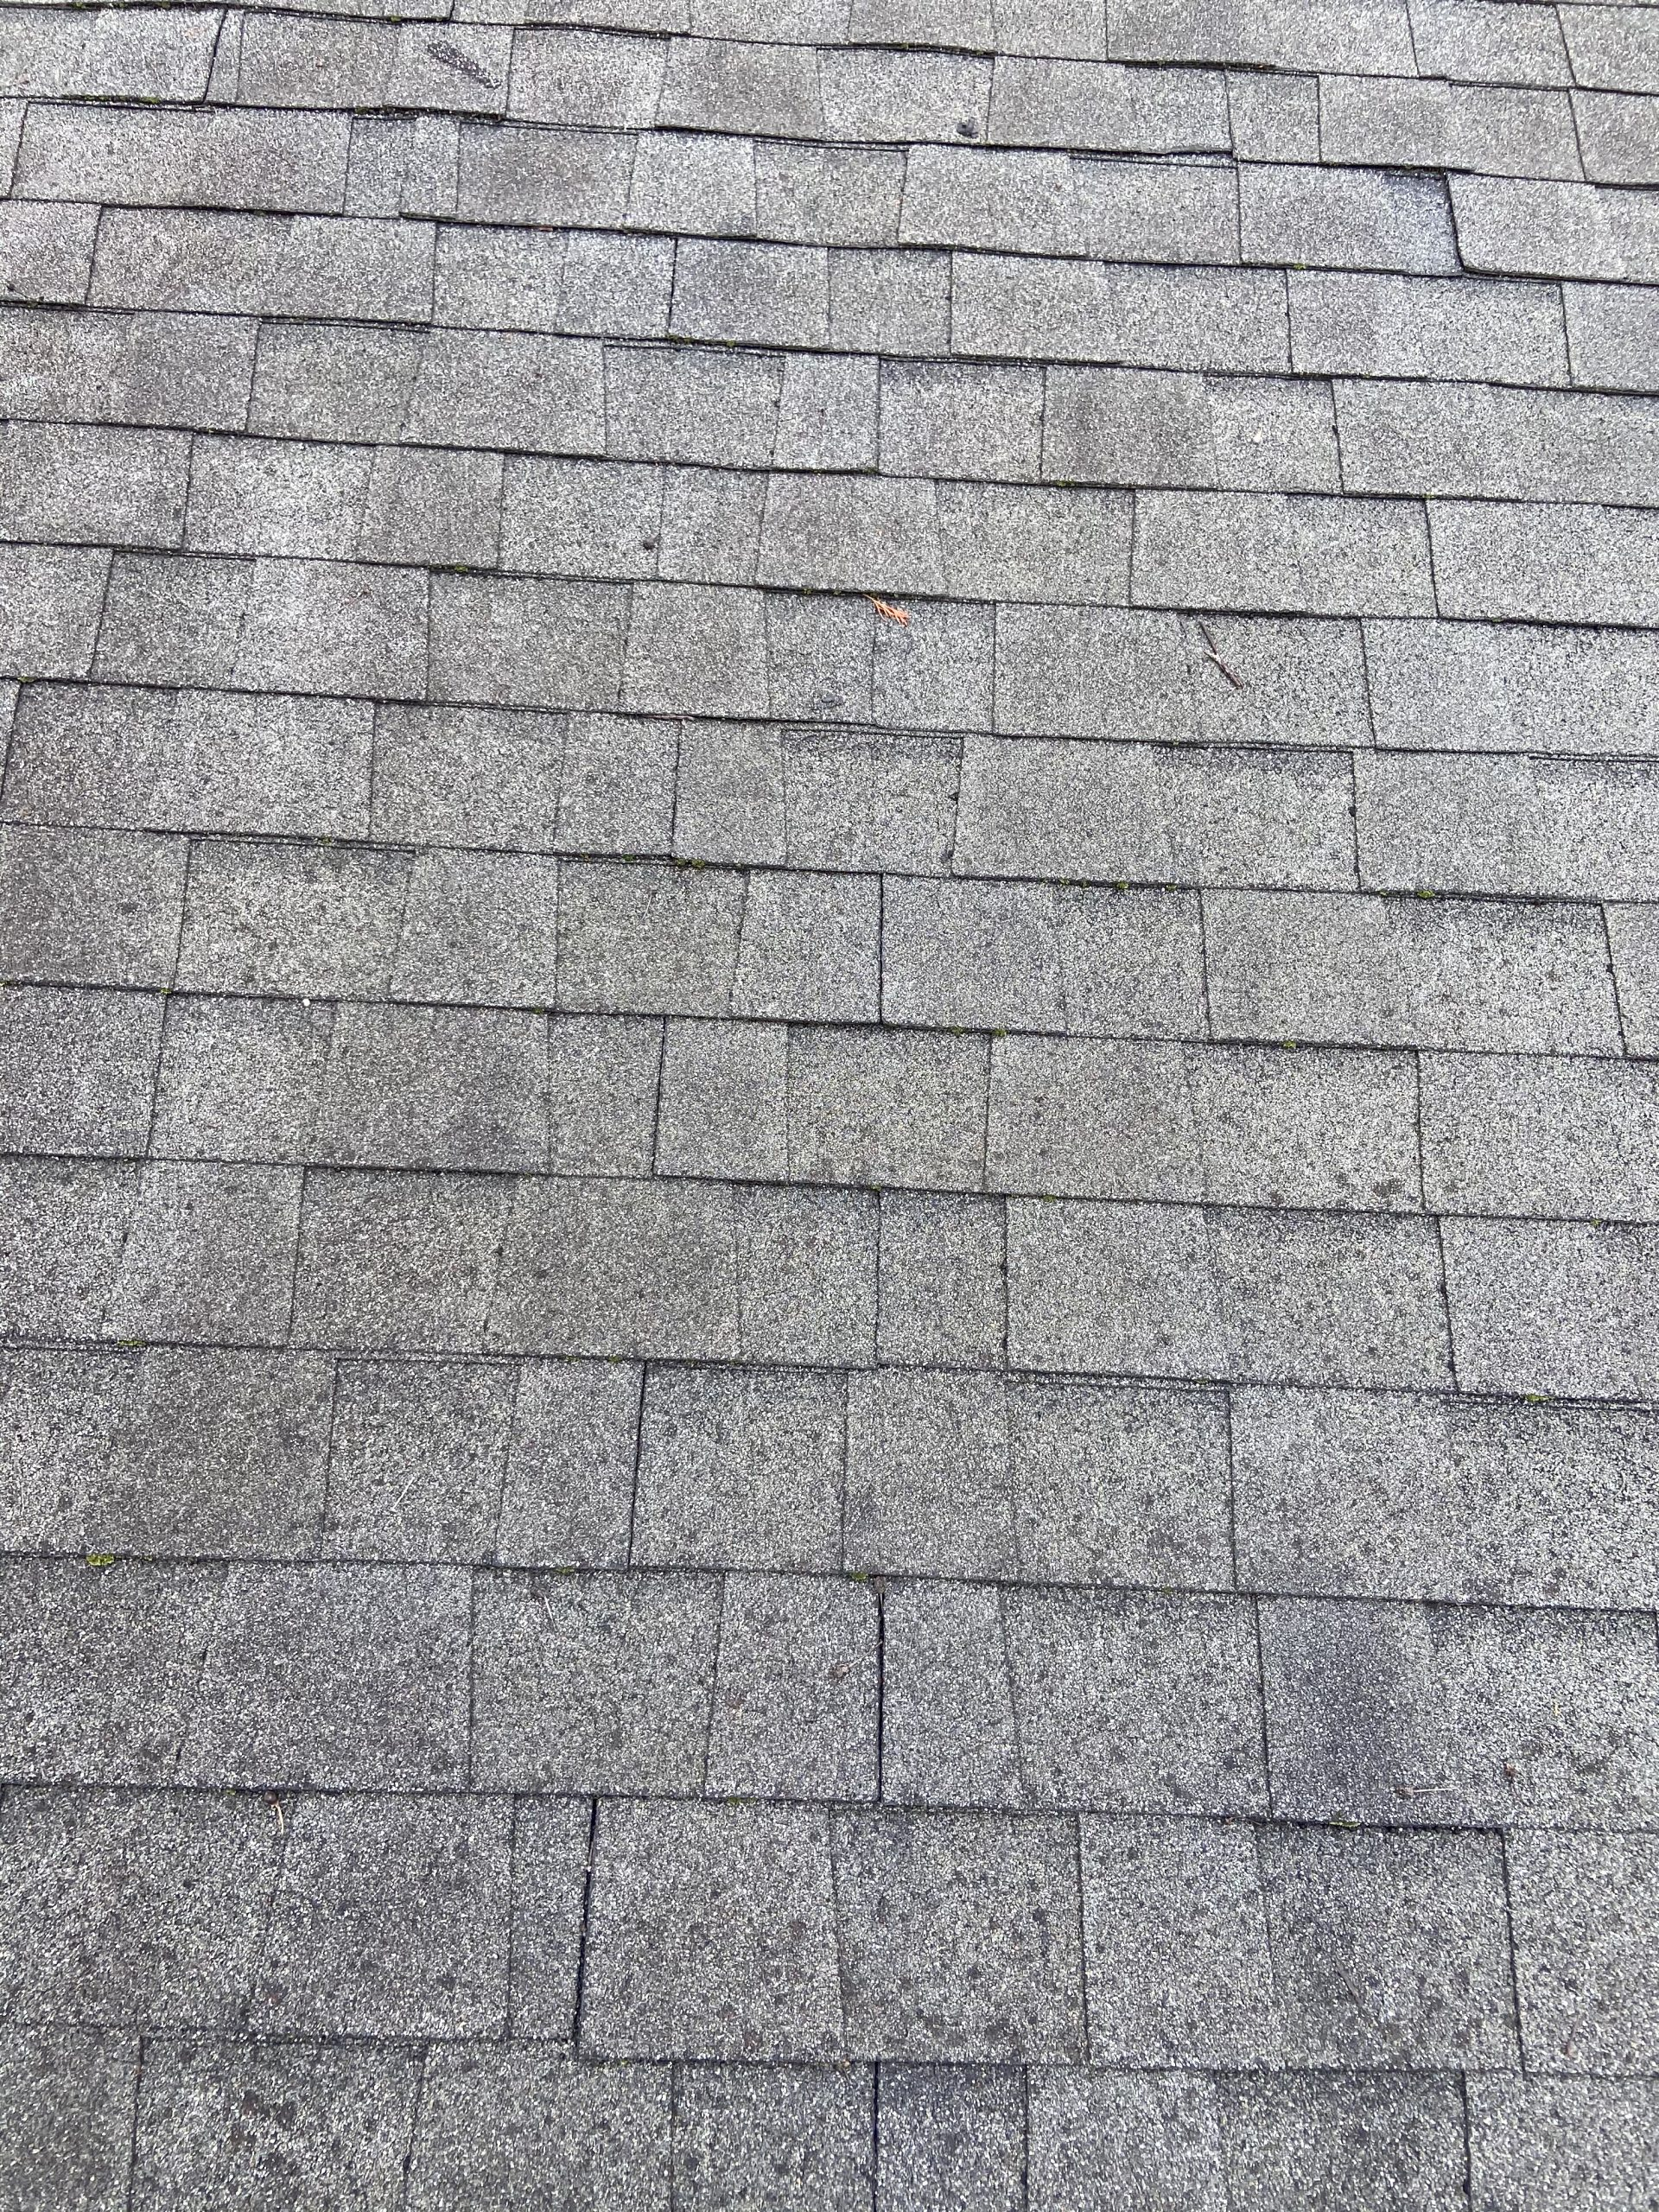 This is an image of dimensional shingles that have damage.